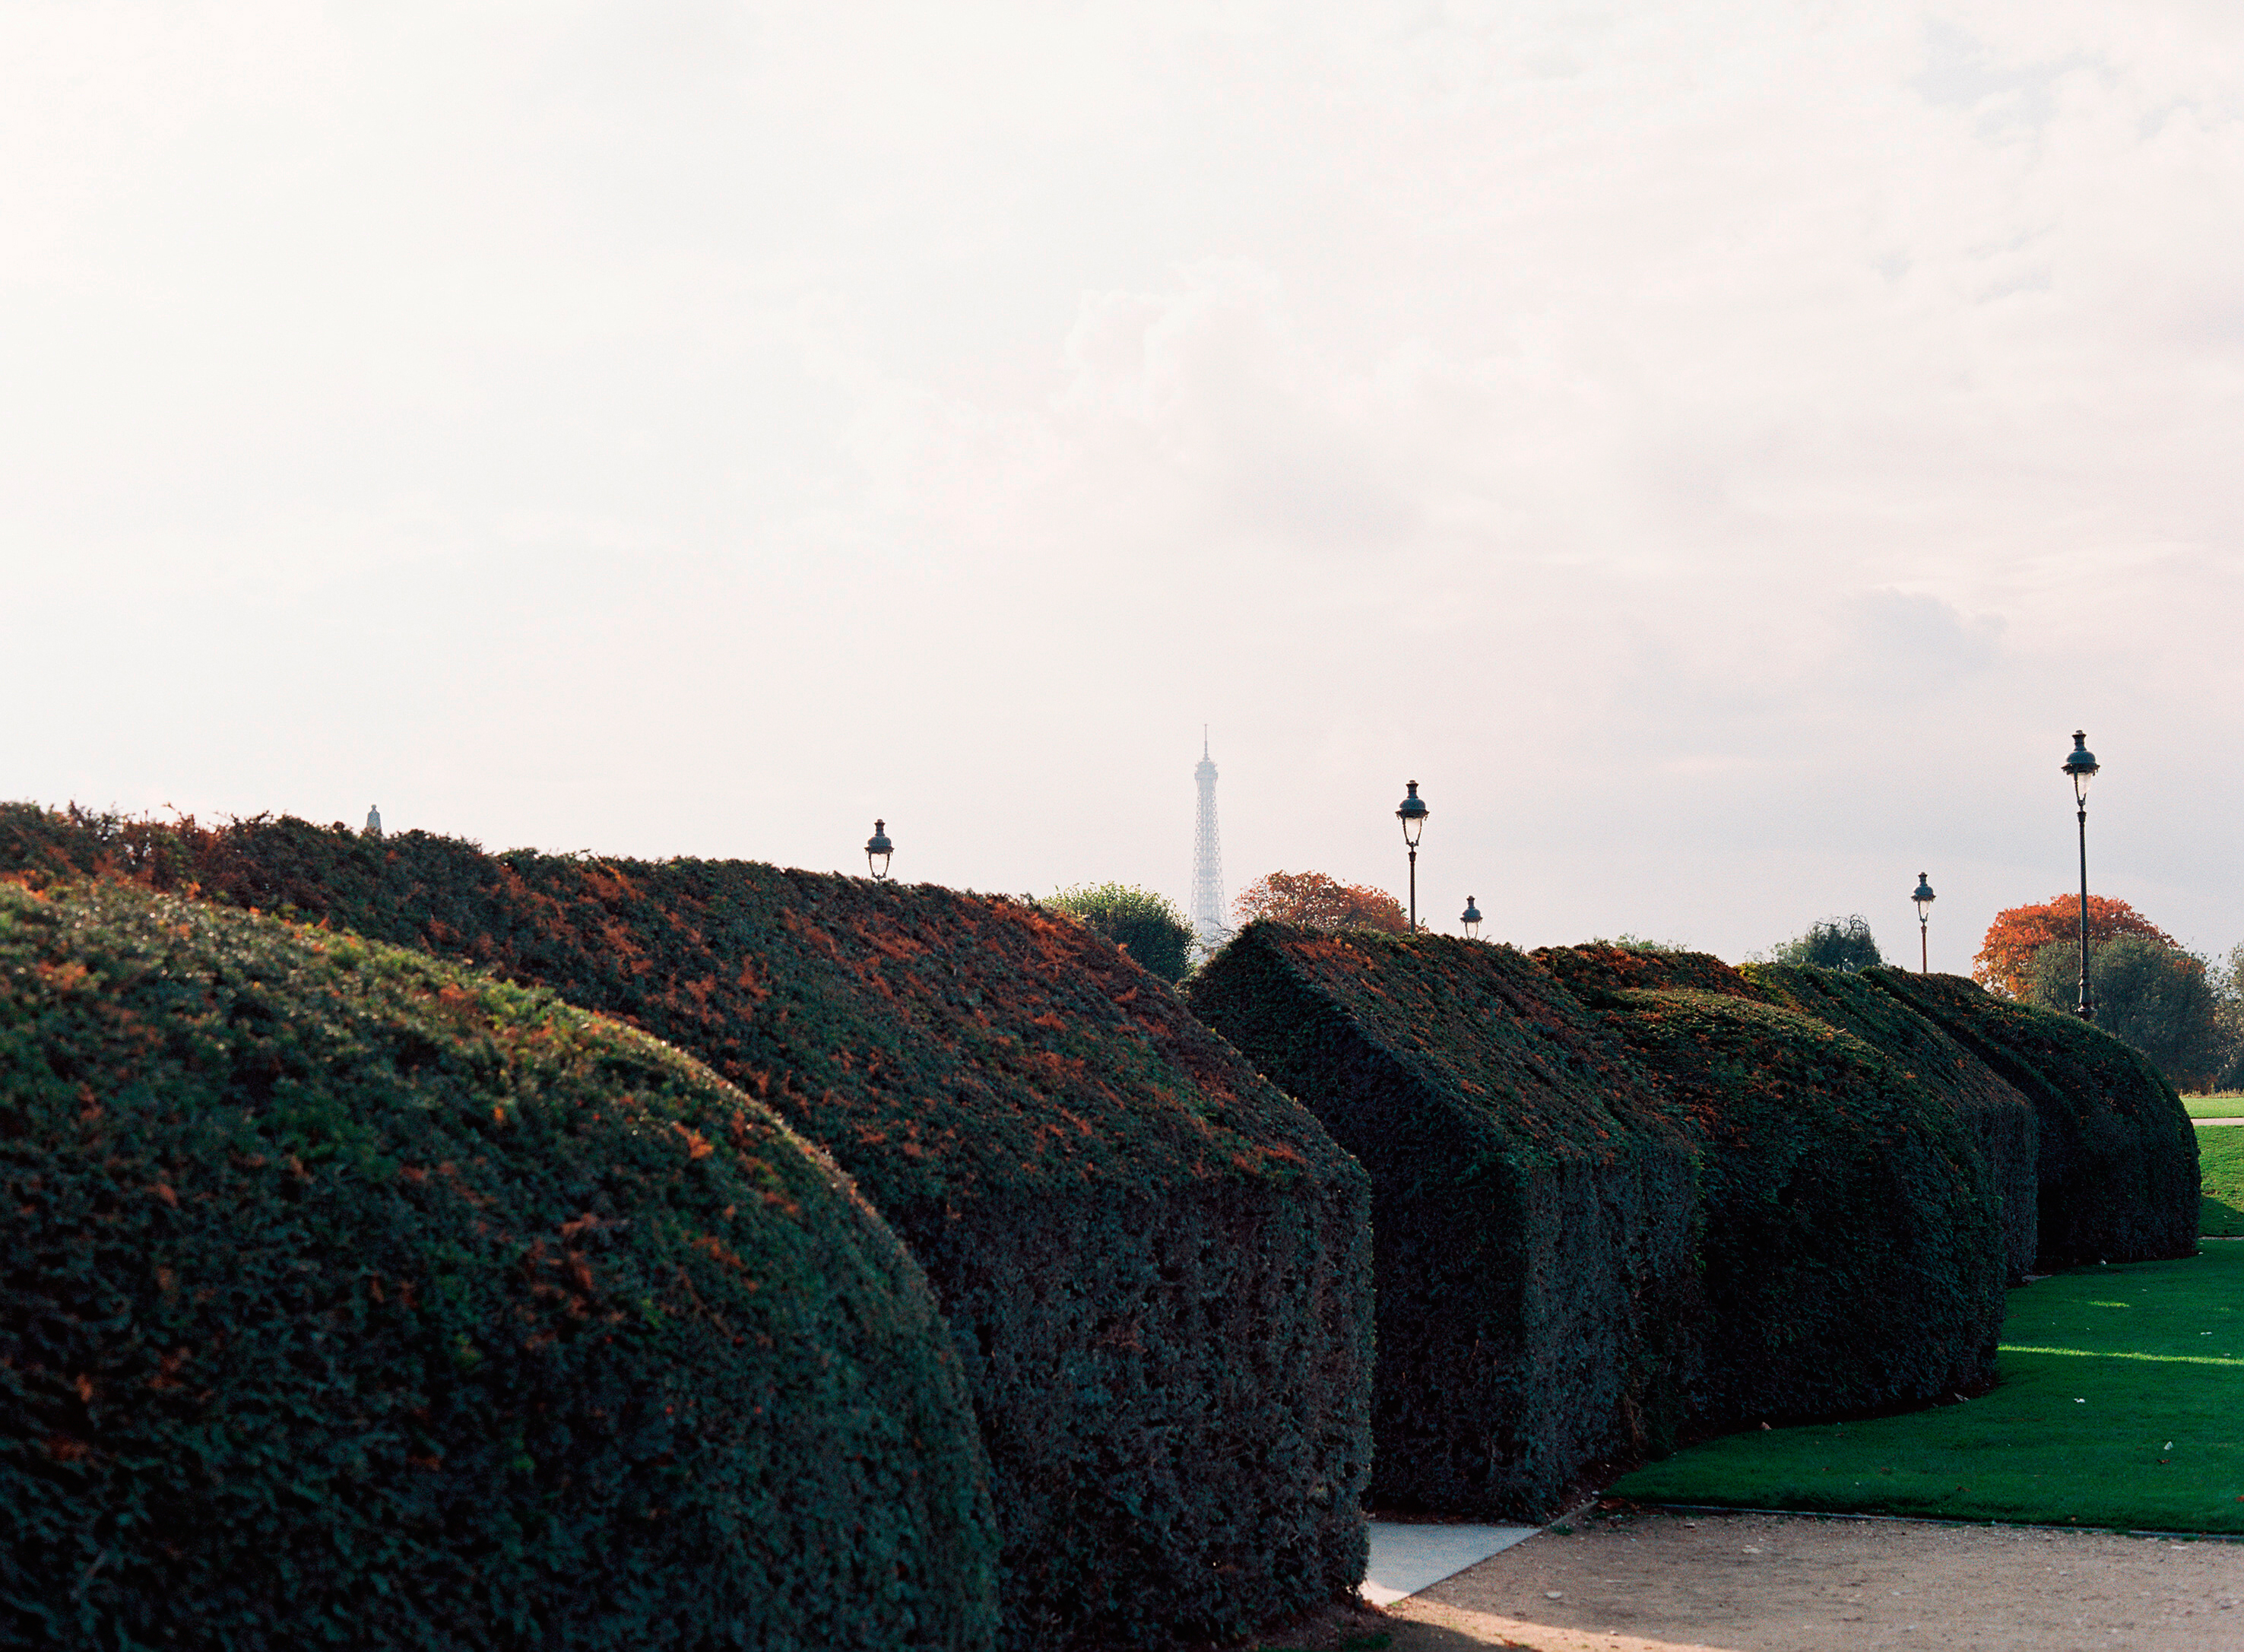 HiP Paris blog. Living, loving, learning in Paris. The Eiffel Tower peeking over the hedges. Photo by Marjorie Preval.